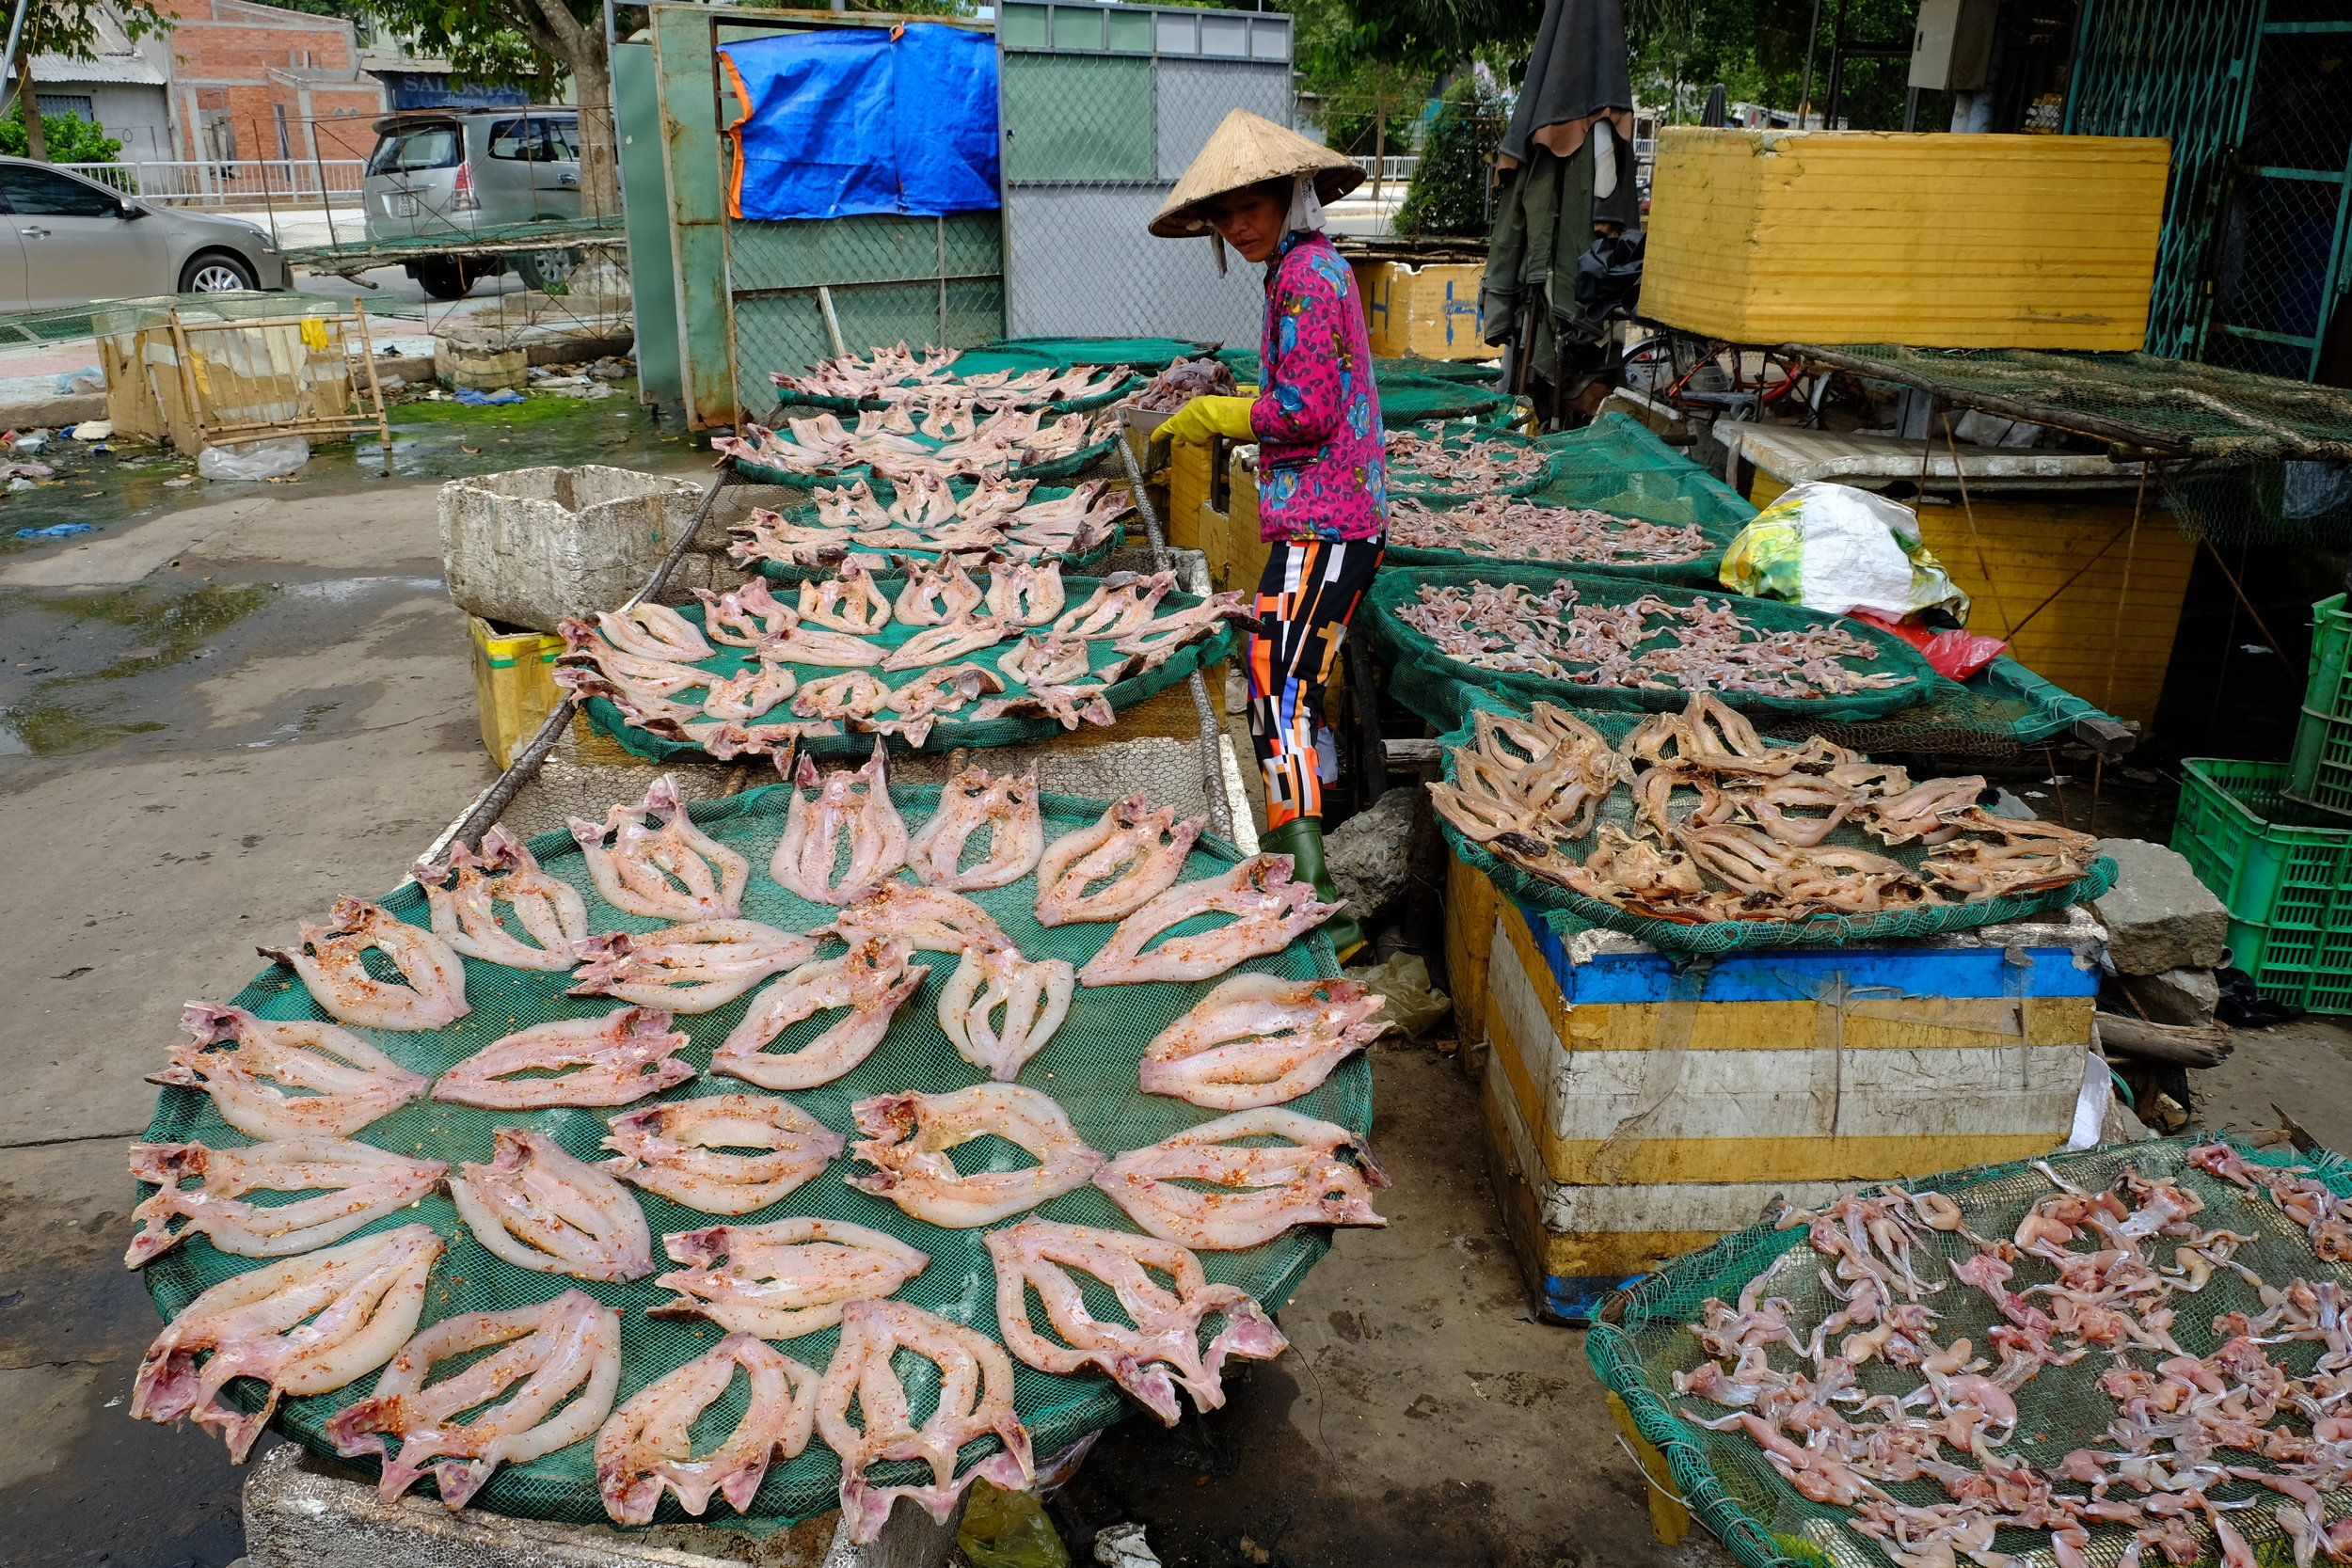 Squid laying out to dry.